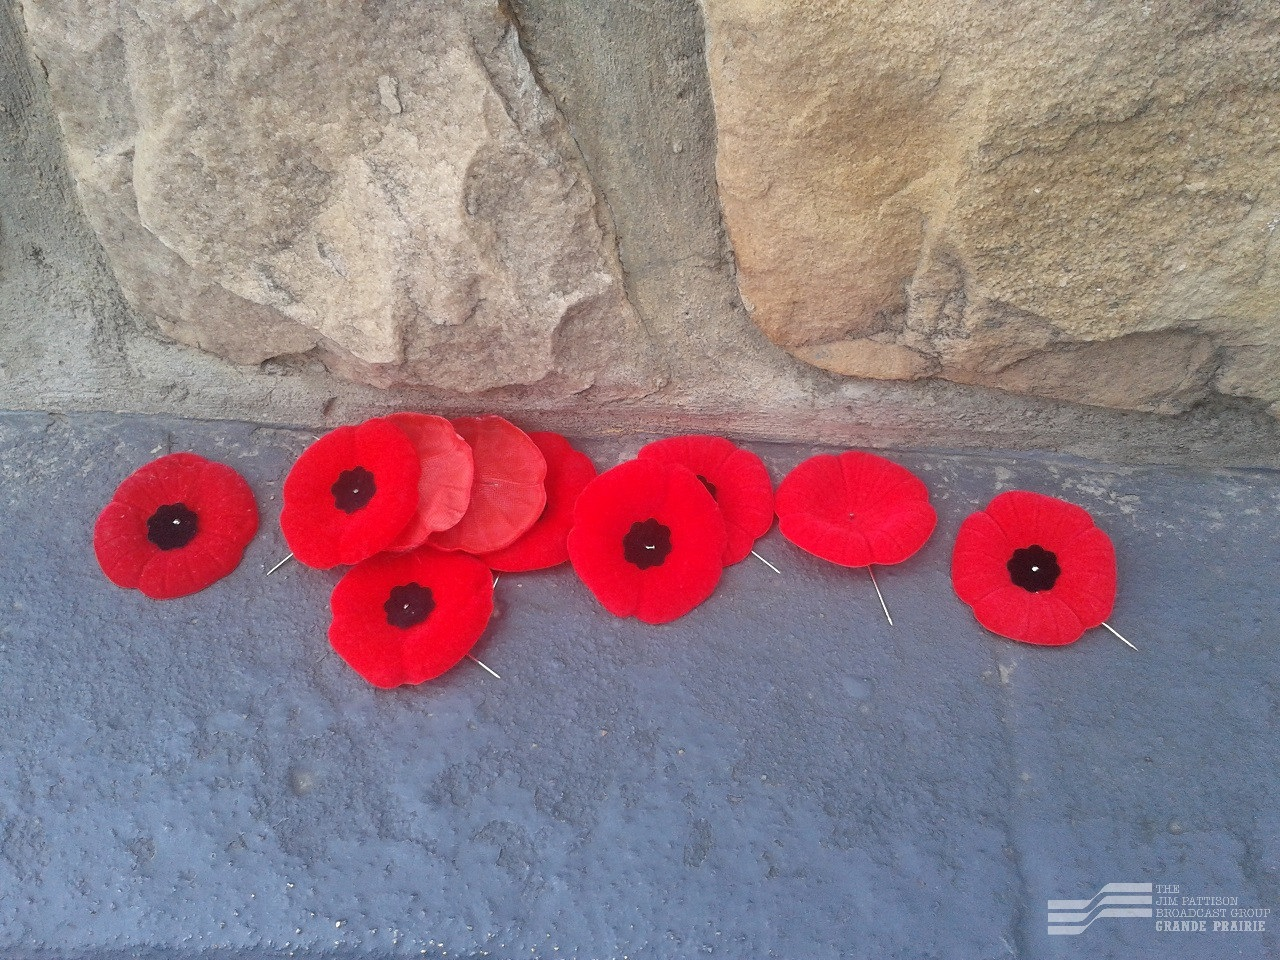 Poppy campaign starts today